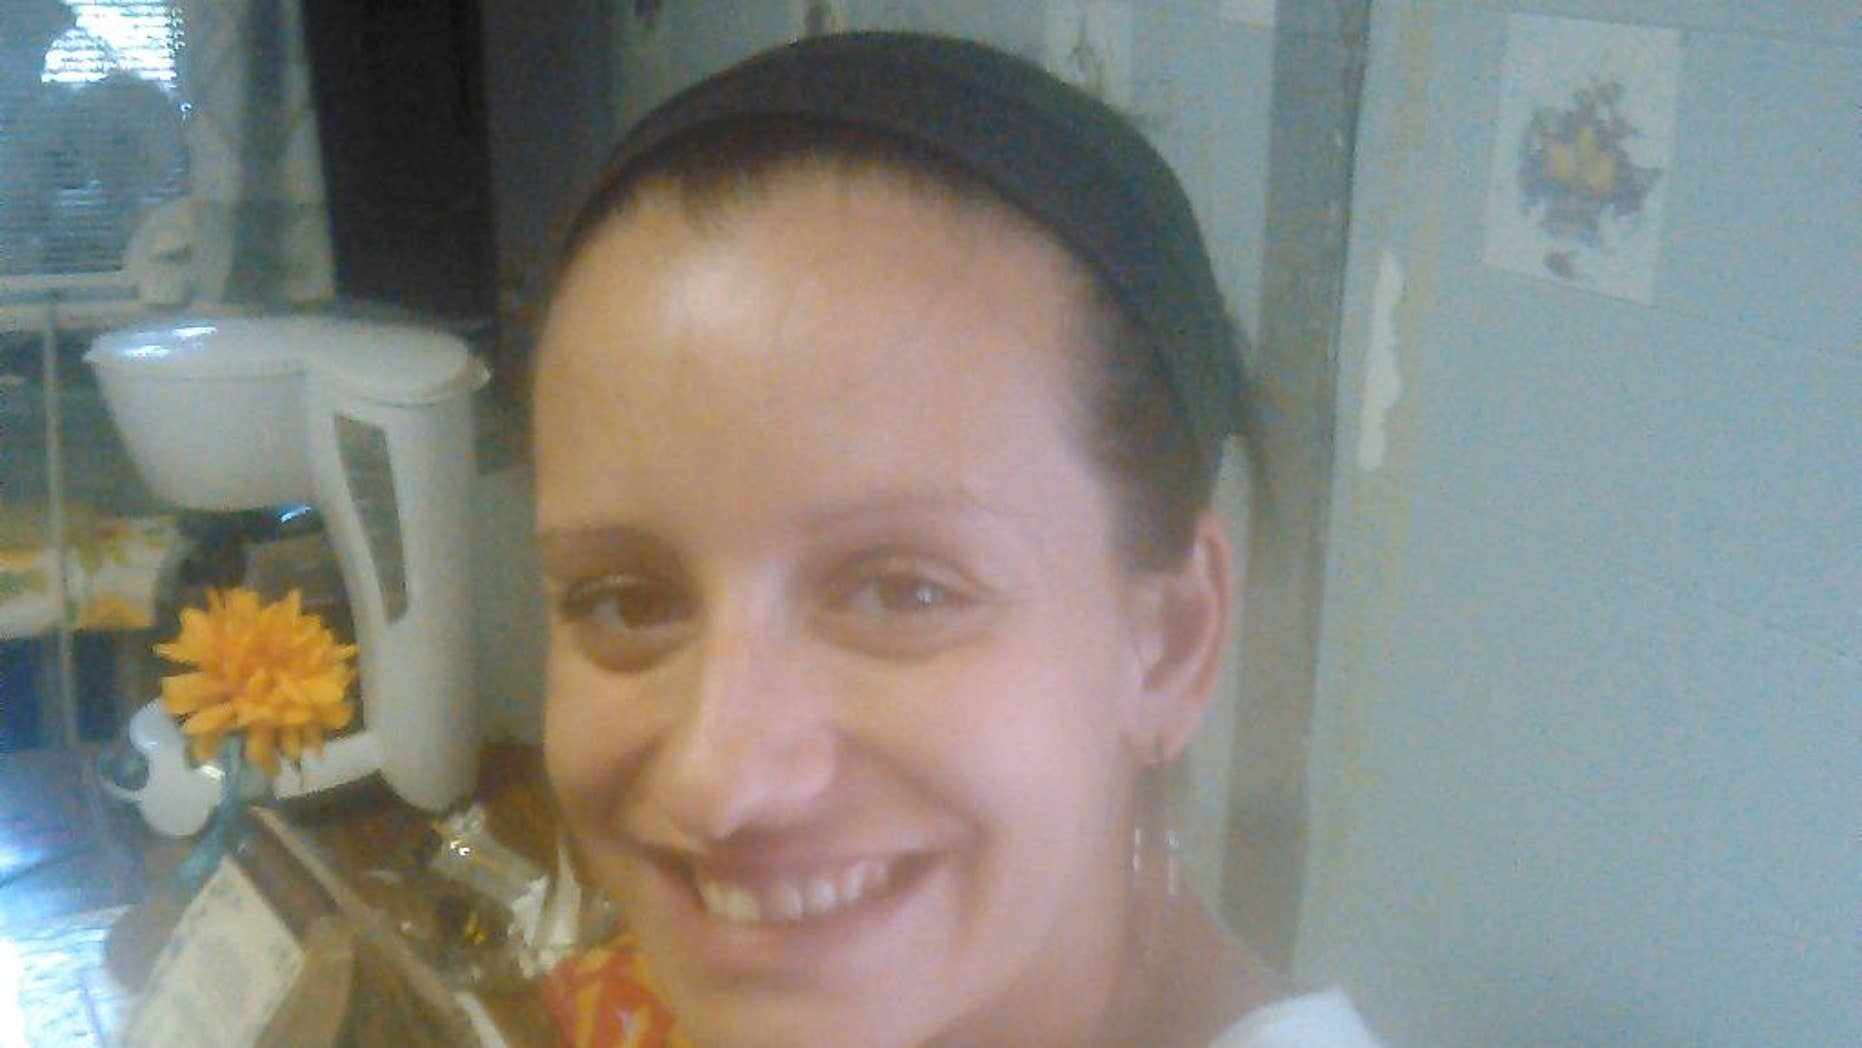 In this undated photo provided by Judith Luckangelo, 25-year-old Megan Doto is show in Philadelphia. Police say on Sunday, Aug. 24, 2014, a bullet struck and killed the 25-year-old Doto, who was eight months pregnant. Doto died less than two hours later. Her child died early Monday at Temple University Hospital. A $40,000 reward is being offered in the deaths of a Luckangelo and her child. Philadelphia Homicide Capt. James Clark says a man dressed in black fired more than 10 shots at a car a block away Sunday morning. (AP Photo/Judith Luckangelo)